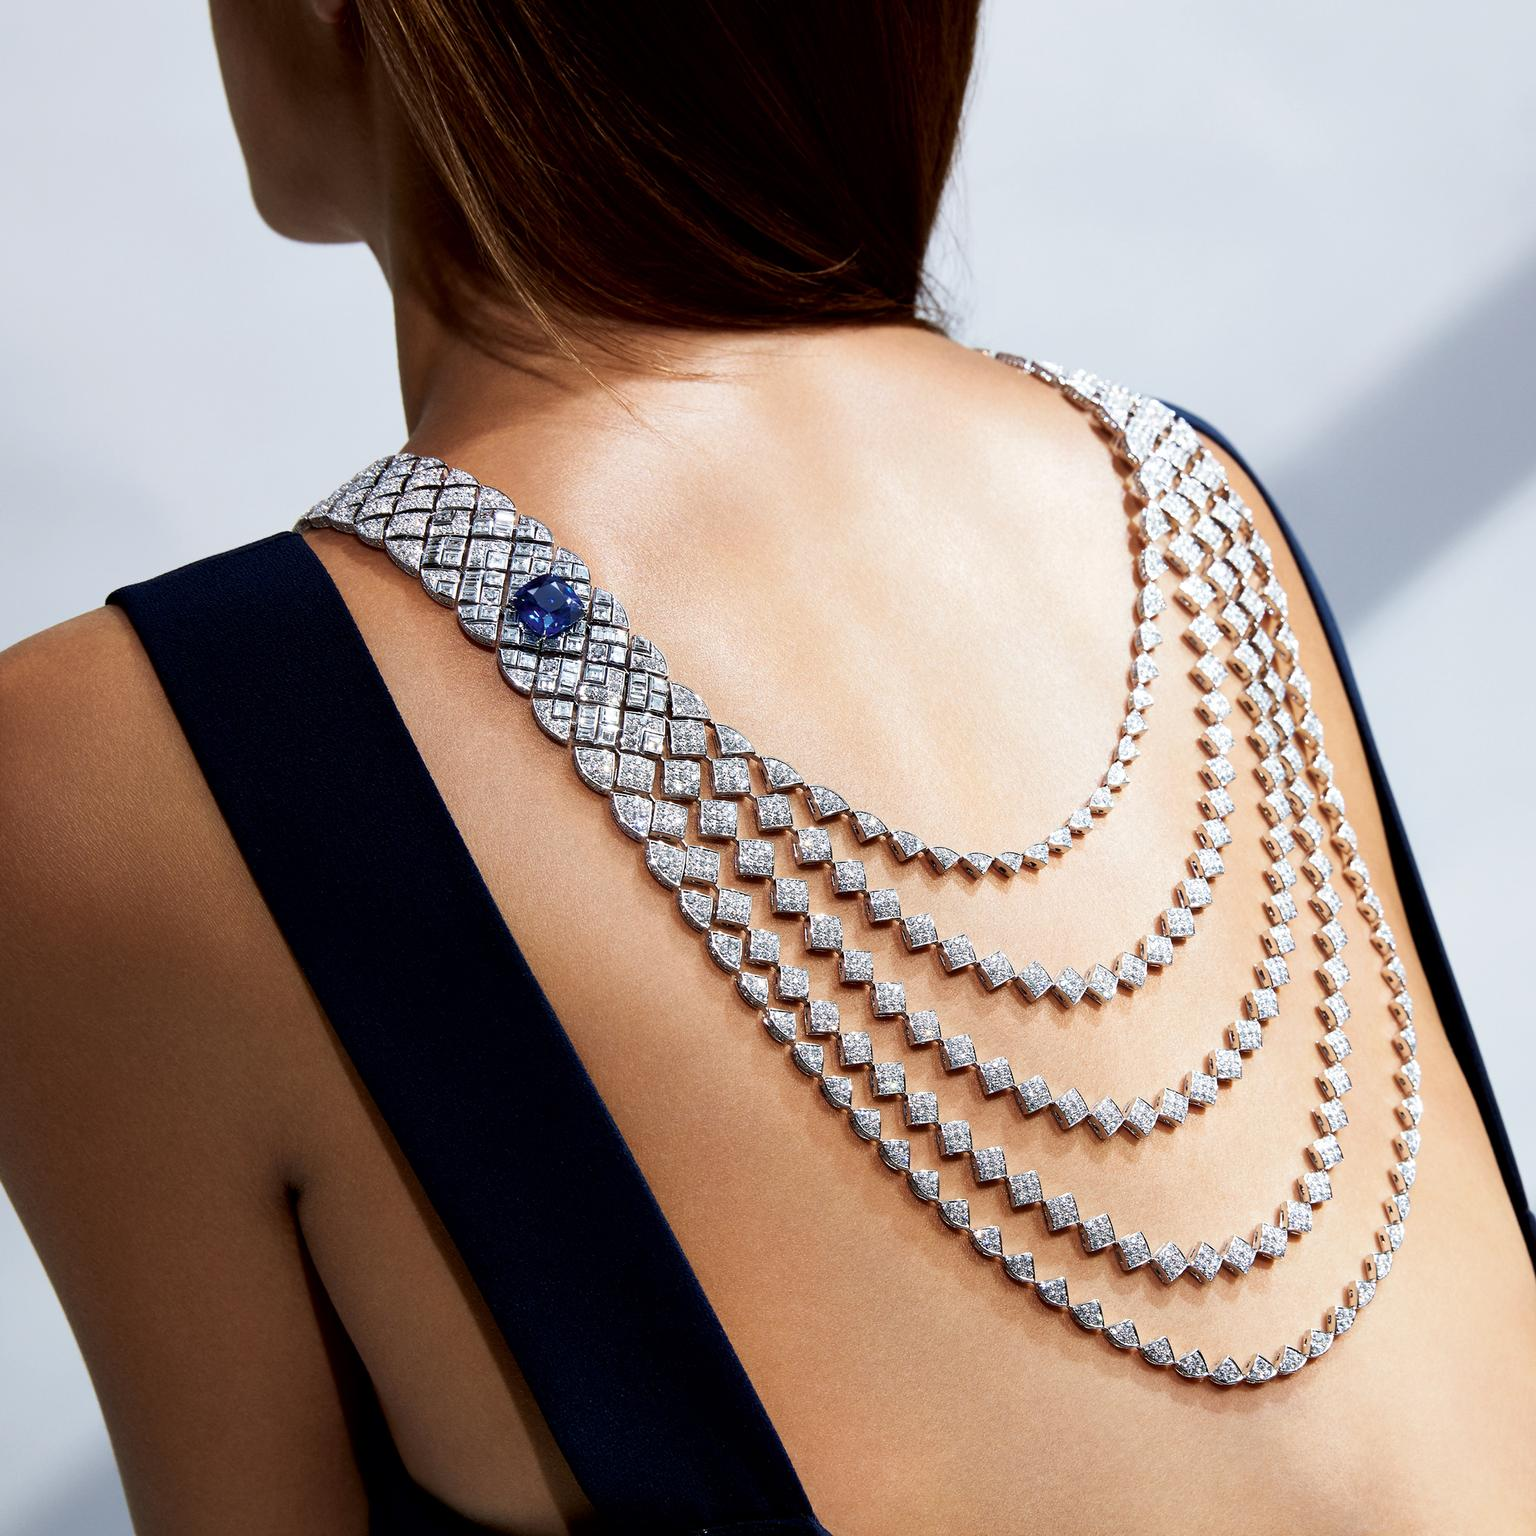 Chanel Signature de Saphir necklace